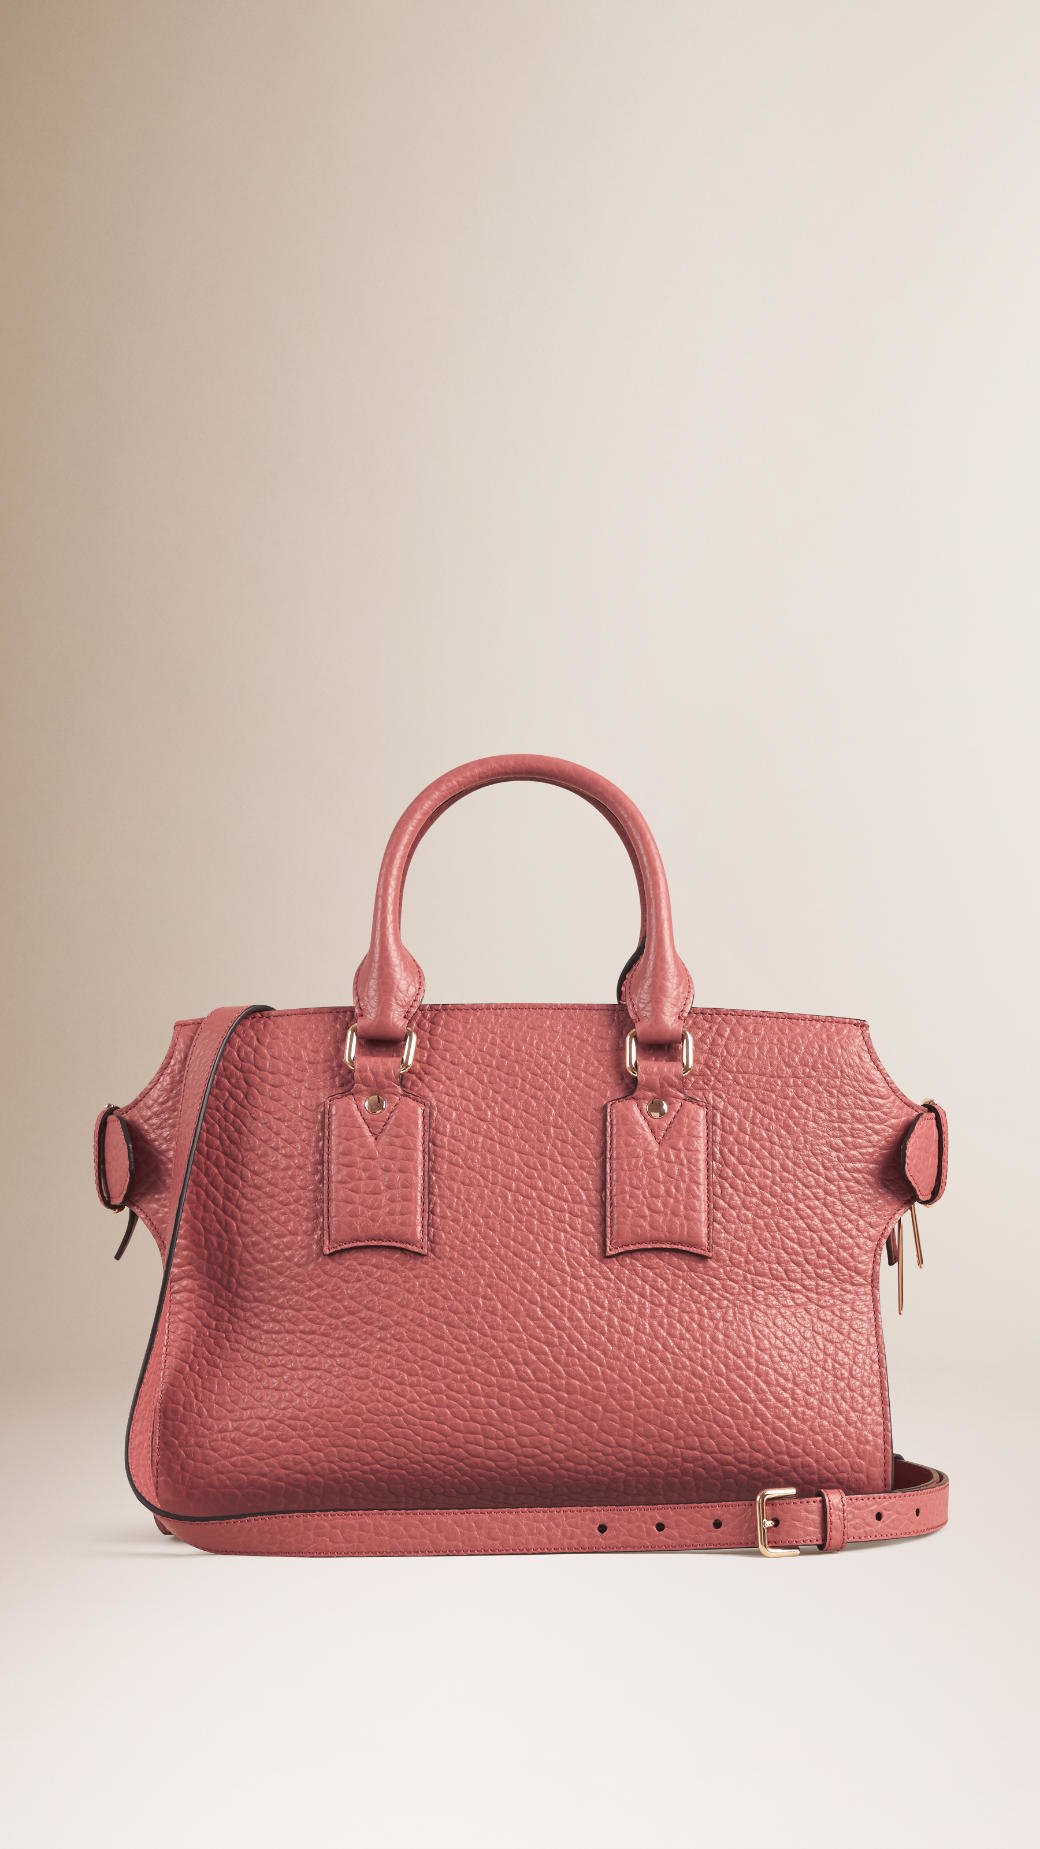 Lyst - Burberry The Medium Clifton In Signature Grain Leather Antique Rose  in Pink 813a6f9566ac3